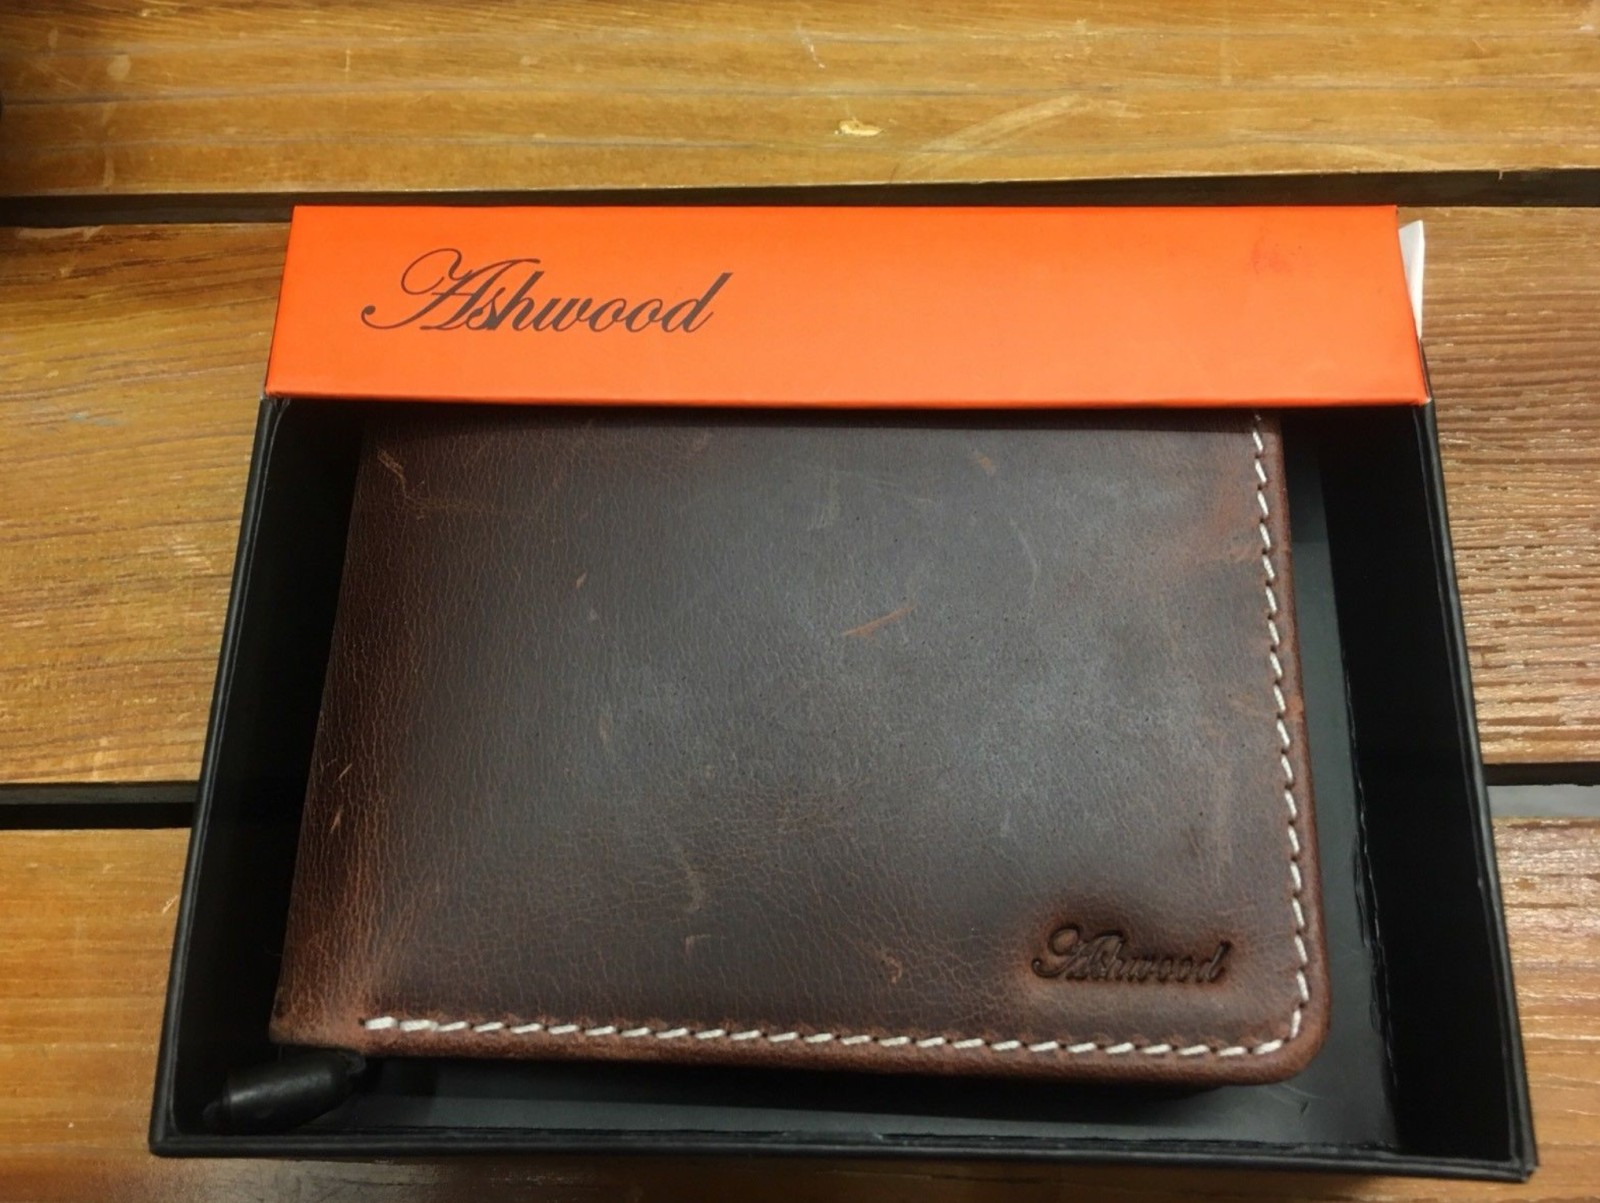 0aef805b518bb Ashwood Mens Leather Wallet Copper 1342 - The way we Wore